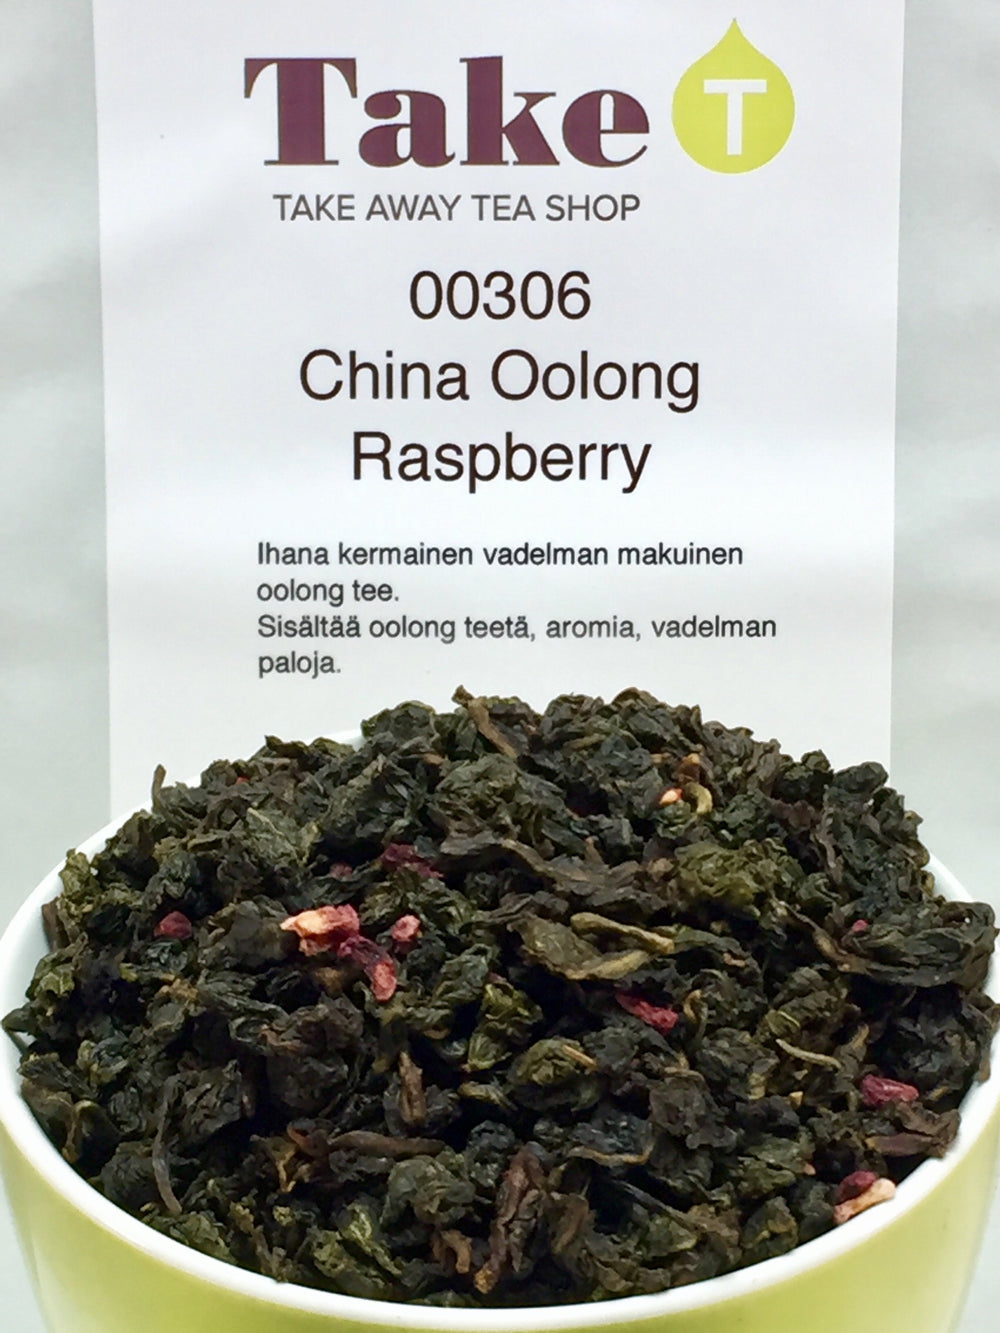 China Oolong Rasberry